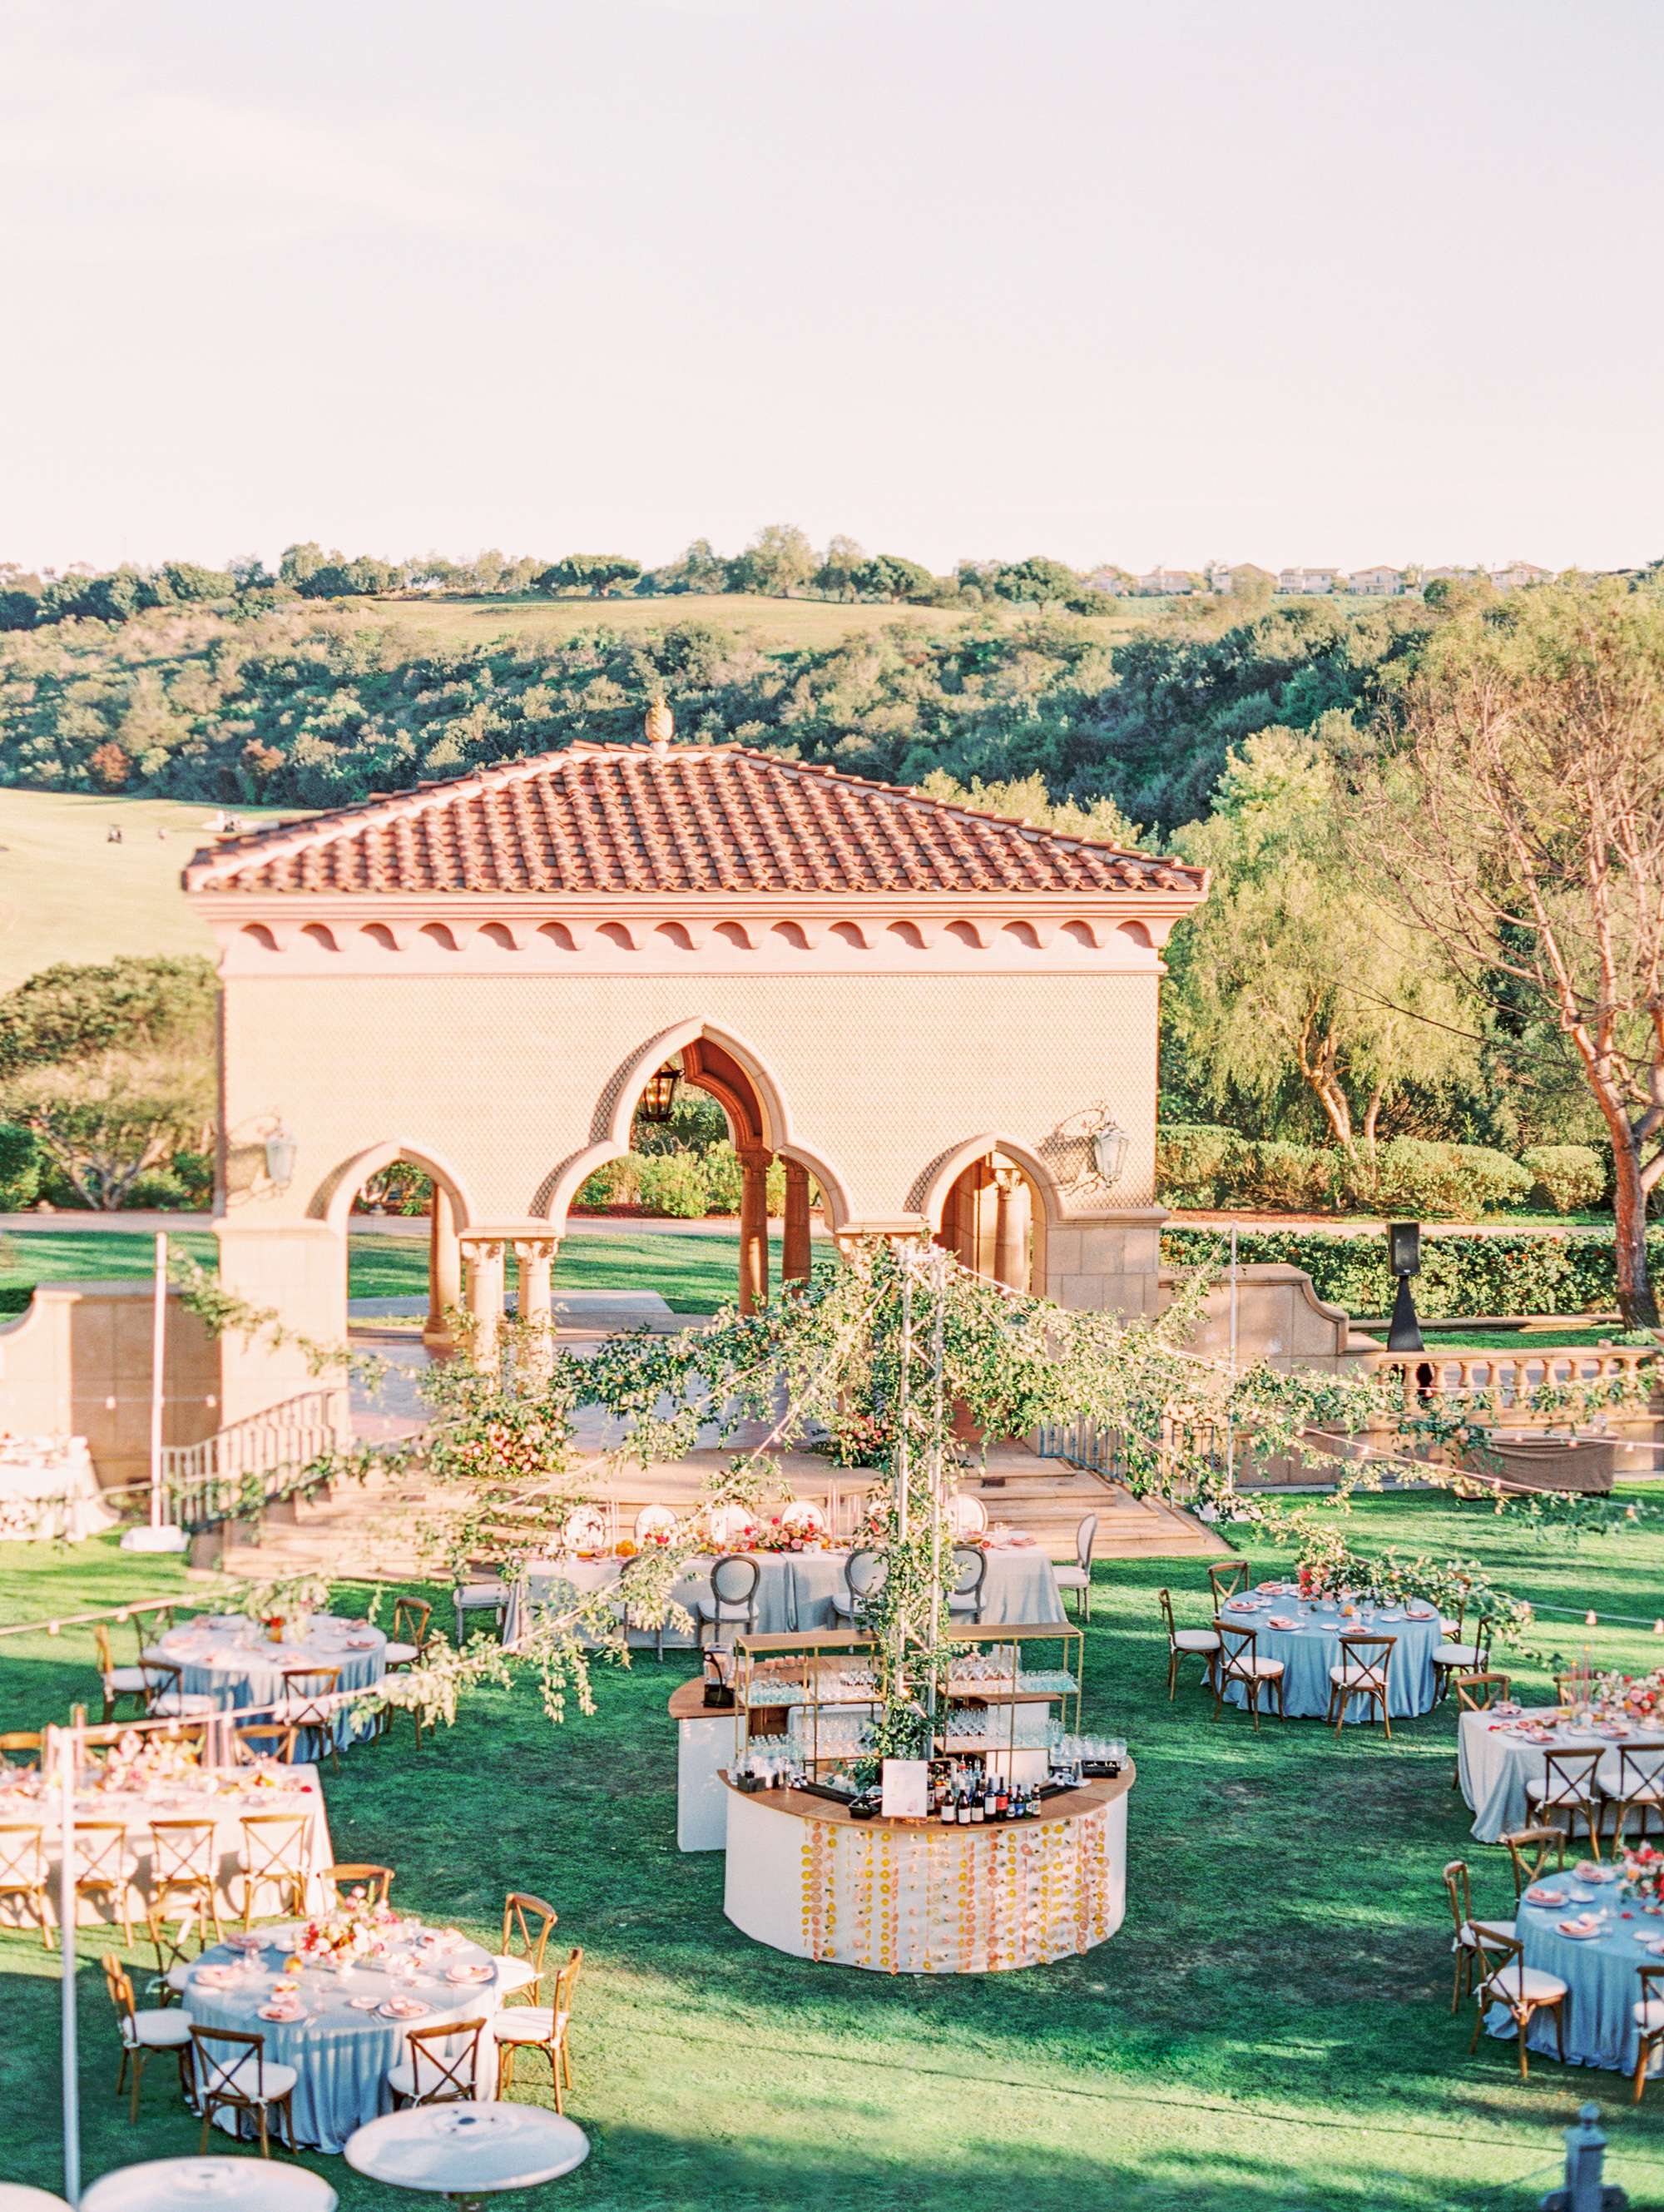 cavin david wedding overview of outdoor reception space